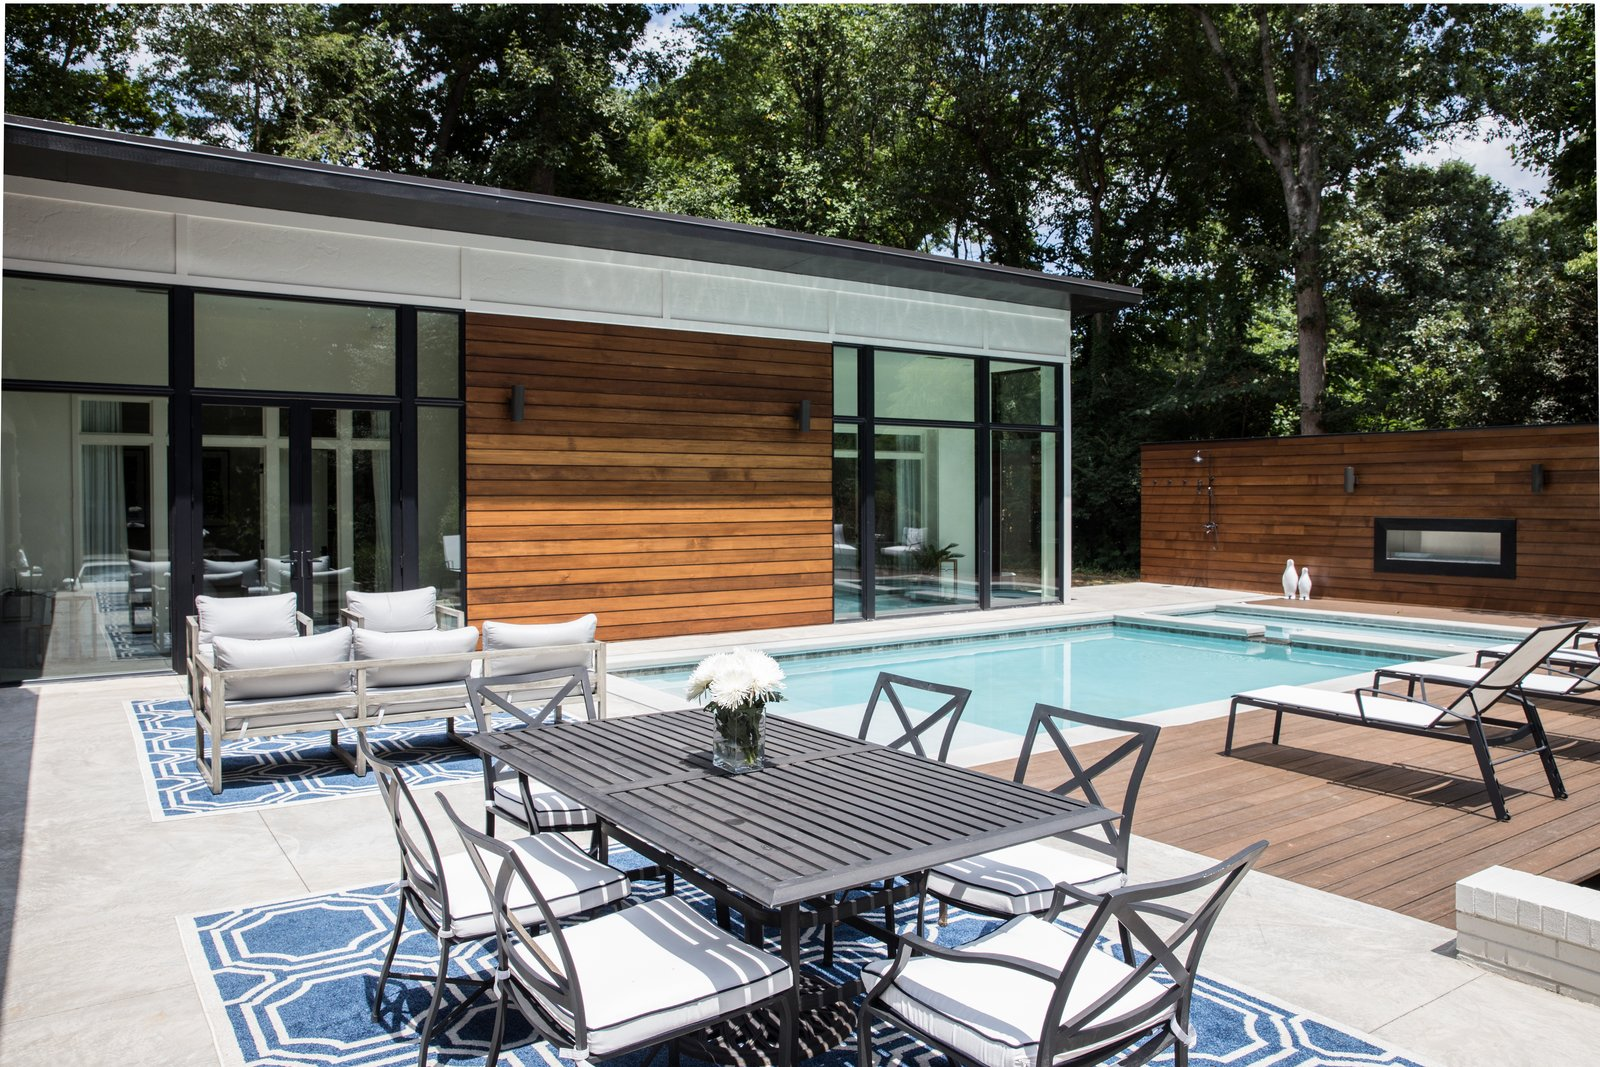 Outdoor, Swimming Pools, Tubs, Shower, Walkways, Shrubs, Landscape Lighting, Large Pools, Tubs, Shower, Wood Fences, Wall, Back Yard, Large Patio, Porch, Deck, Horizontal Fences, Wall, Decking Patio, Porch, Deck, Wood Patio, Porch, Deck, Post Lighting, Concrete Pools, Tubs, Shower, Concrete Patio, Porch, Deck, Hardscapes, and Trees Addition of two master suites as viewed from terrace  Guinn/Henderson Residence